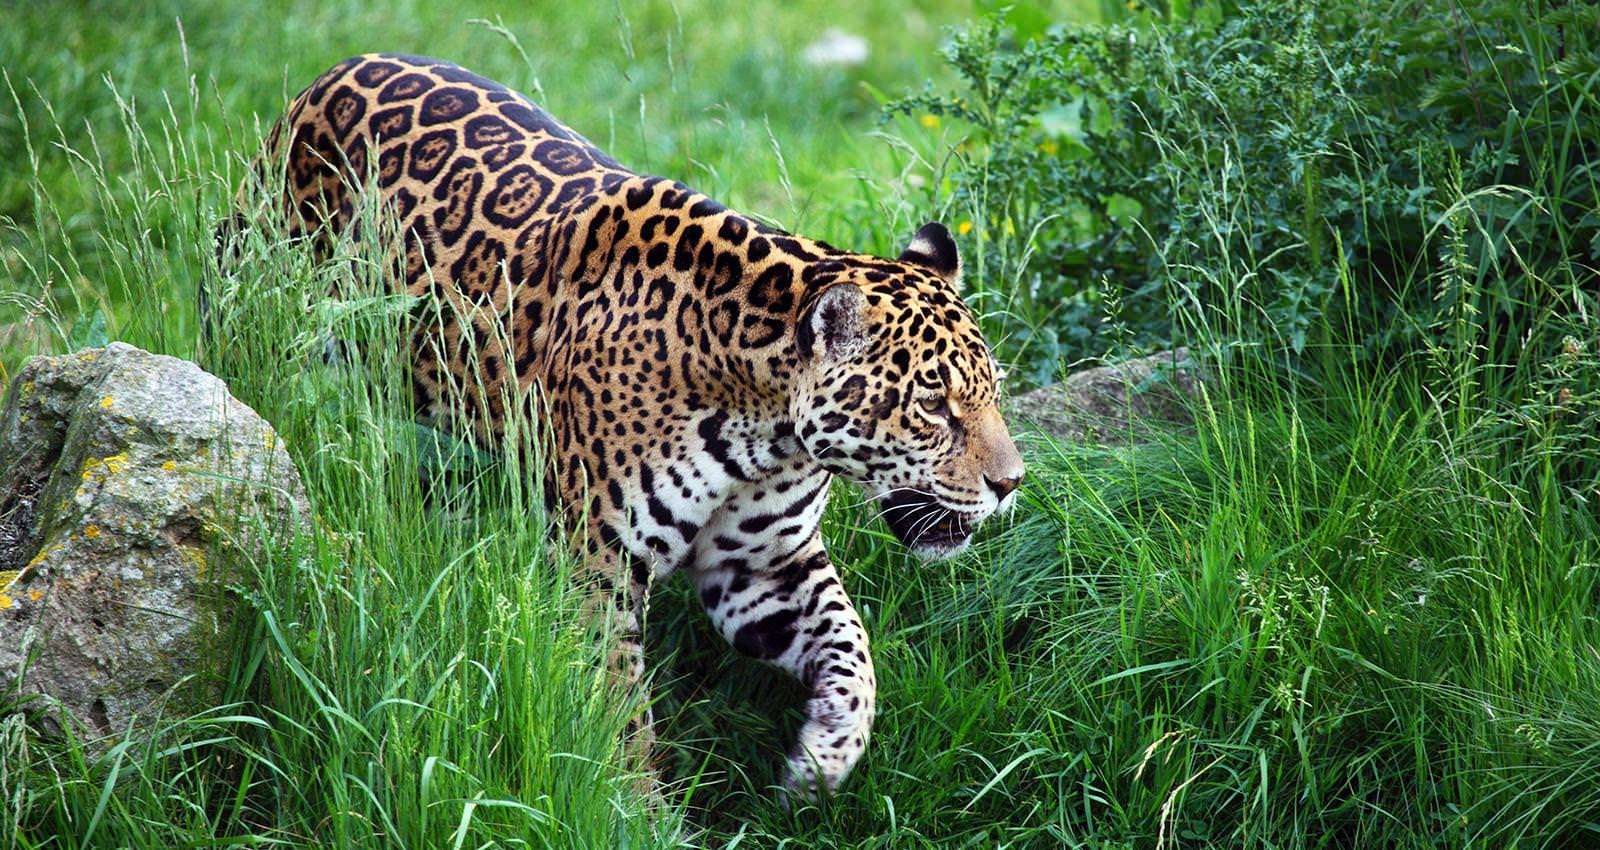 The Jaguars of Peru - Andean Spirit